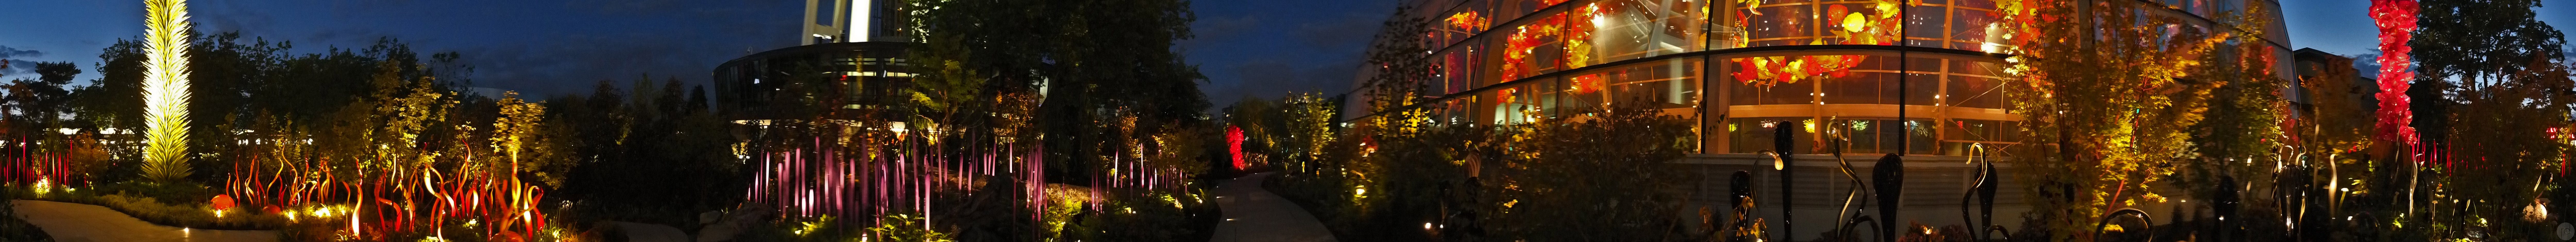 A 360 view of the Chihuly Garden on a late summers evening.